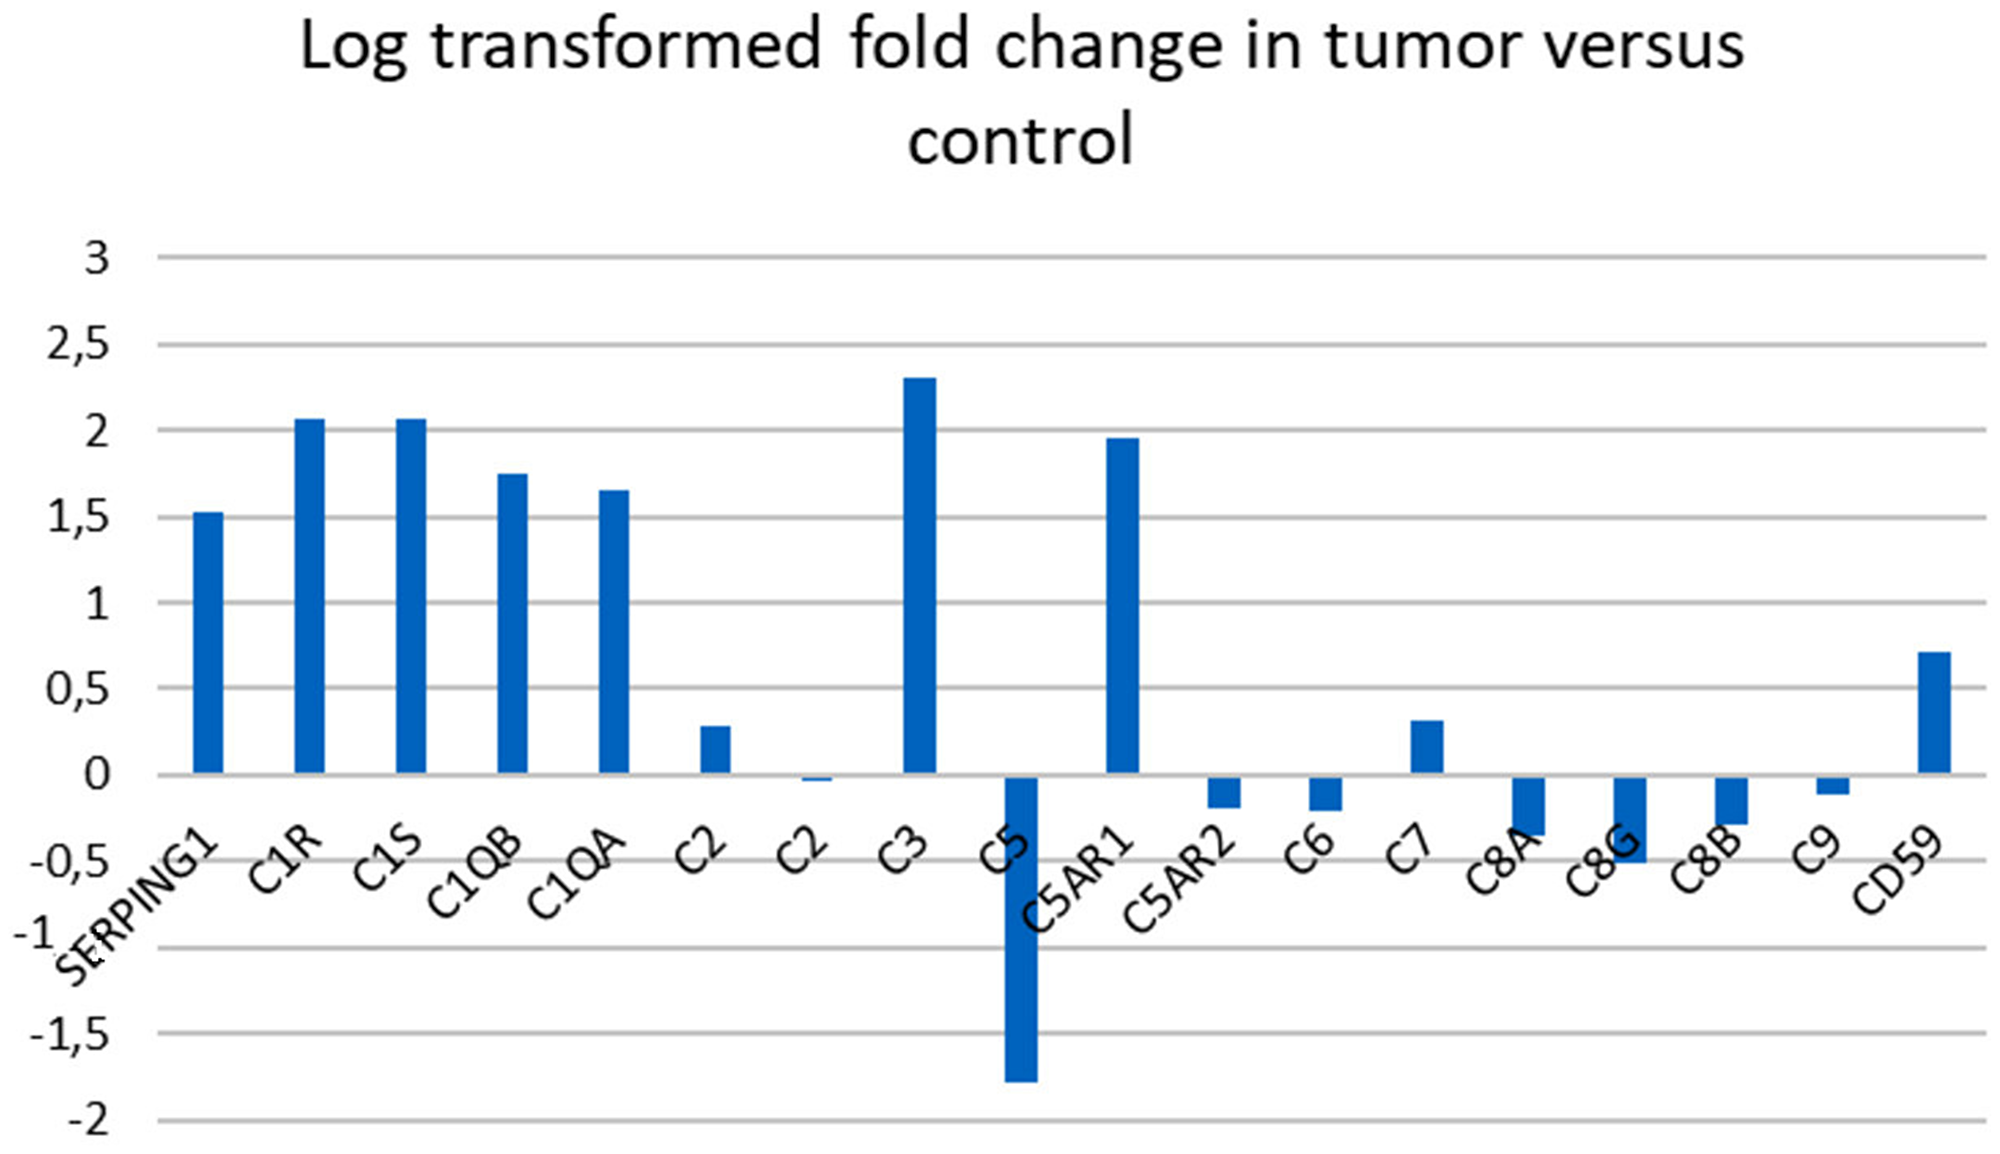 Gene expression in complement associated genes in pancreatic cancer versus control tissue.